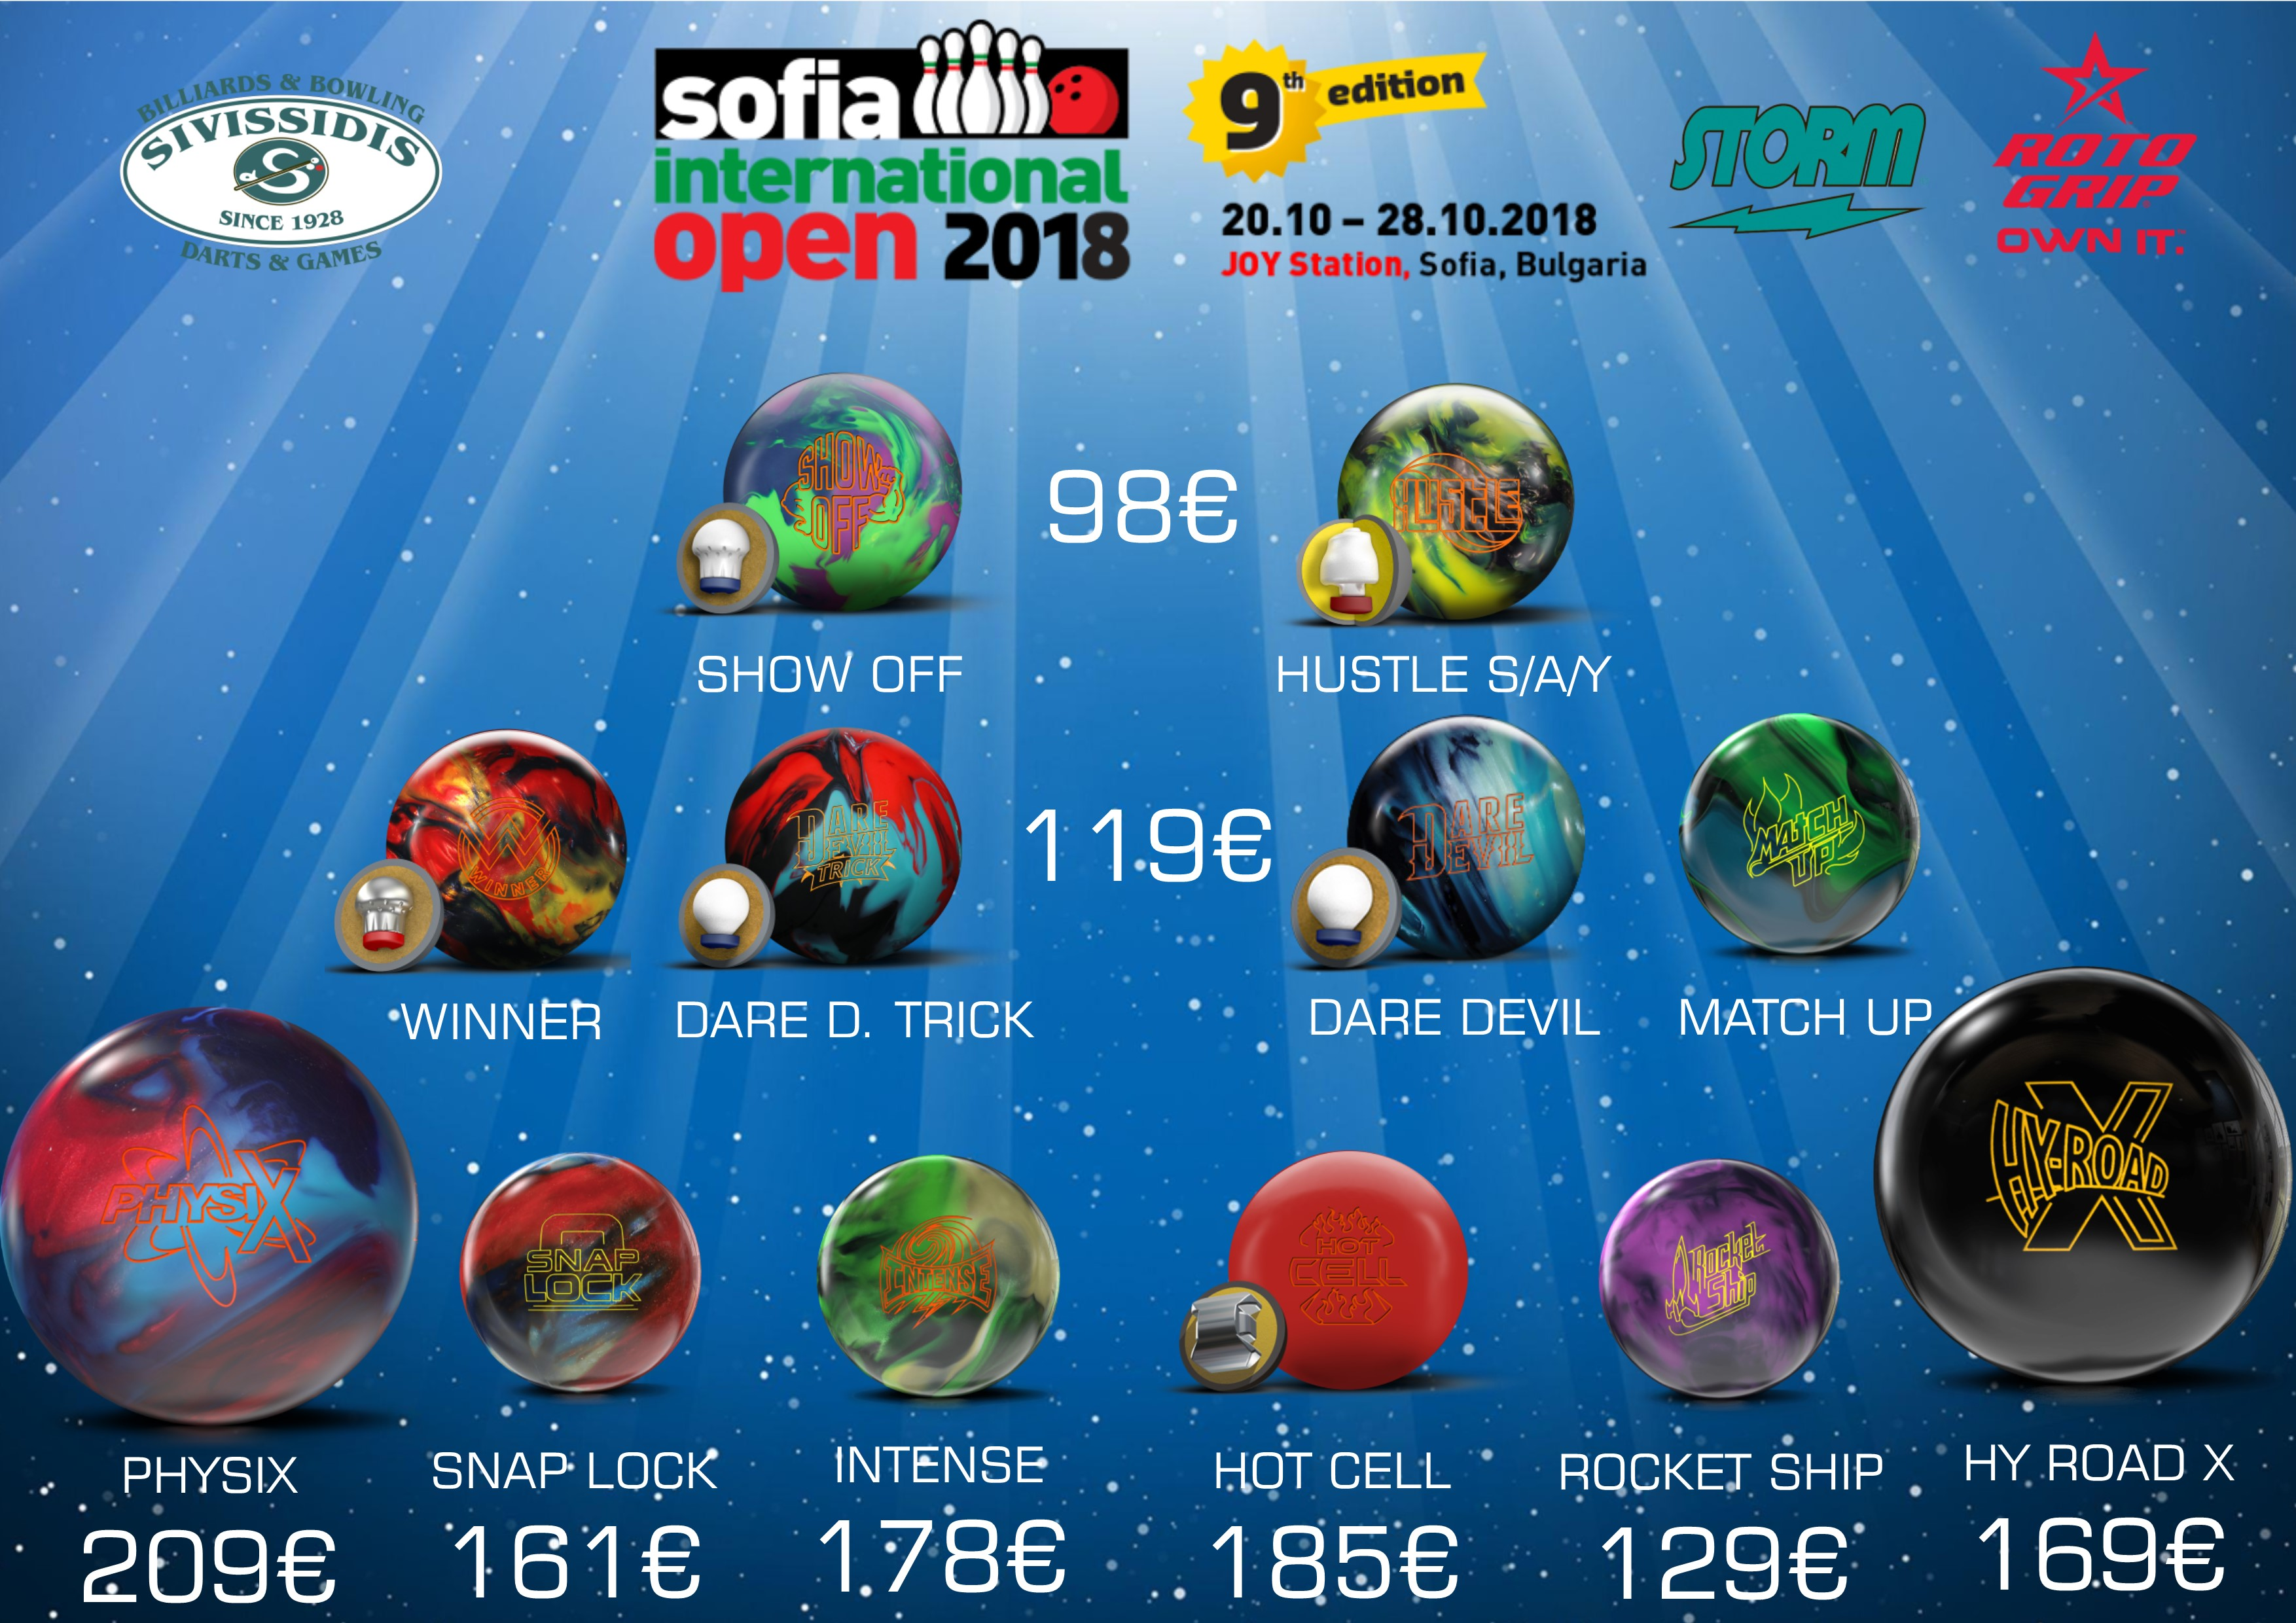 Sofia International 2018 Ball Offers